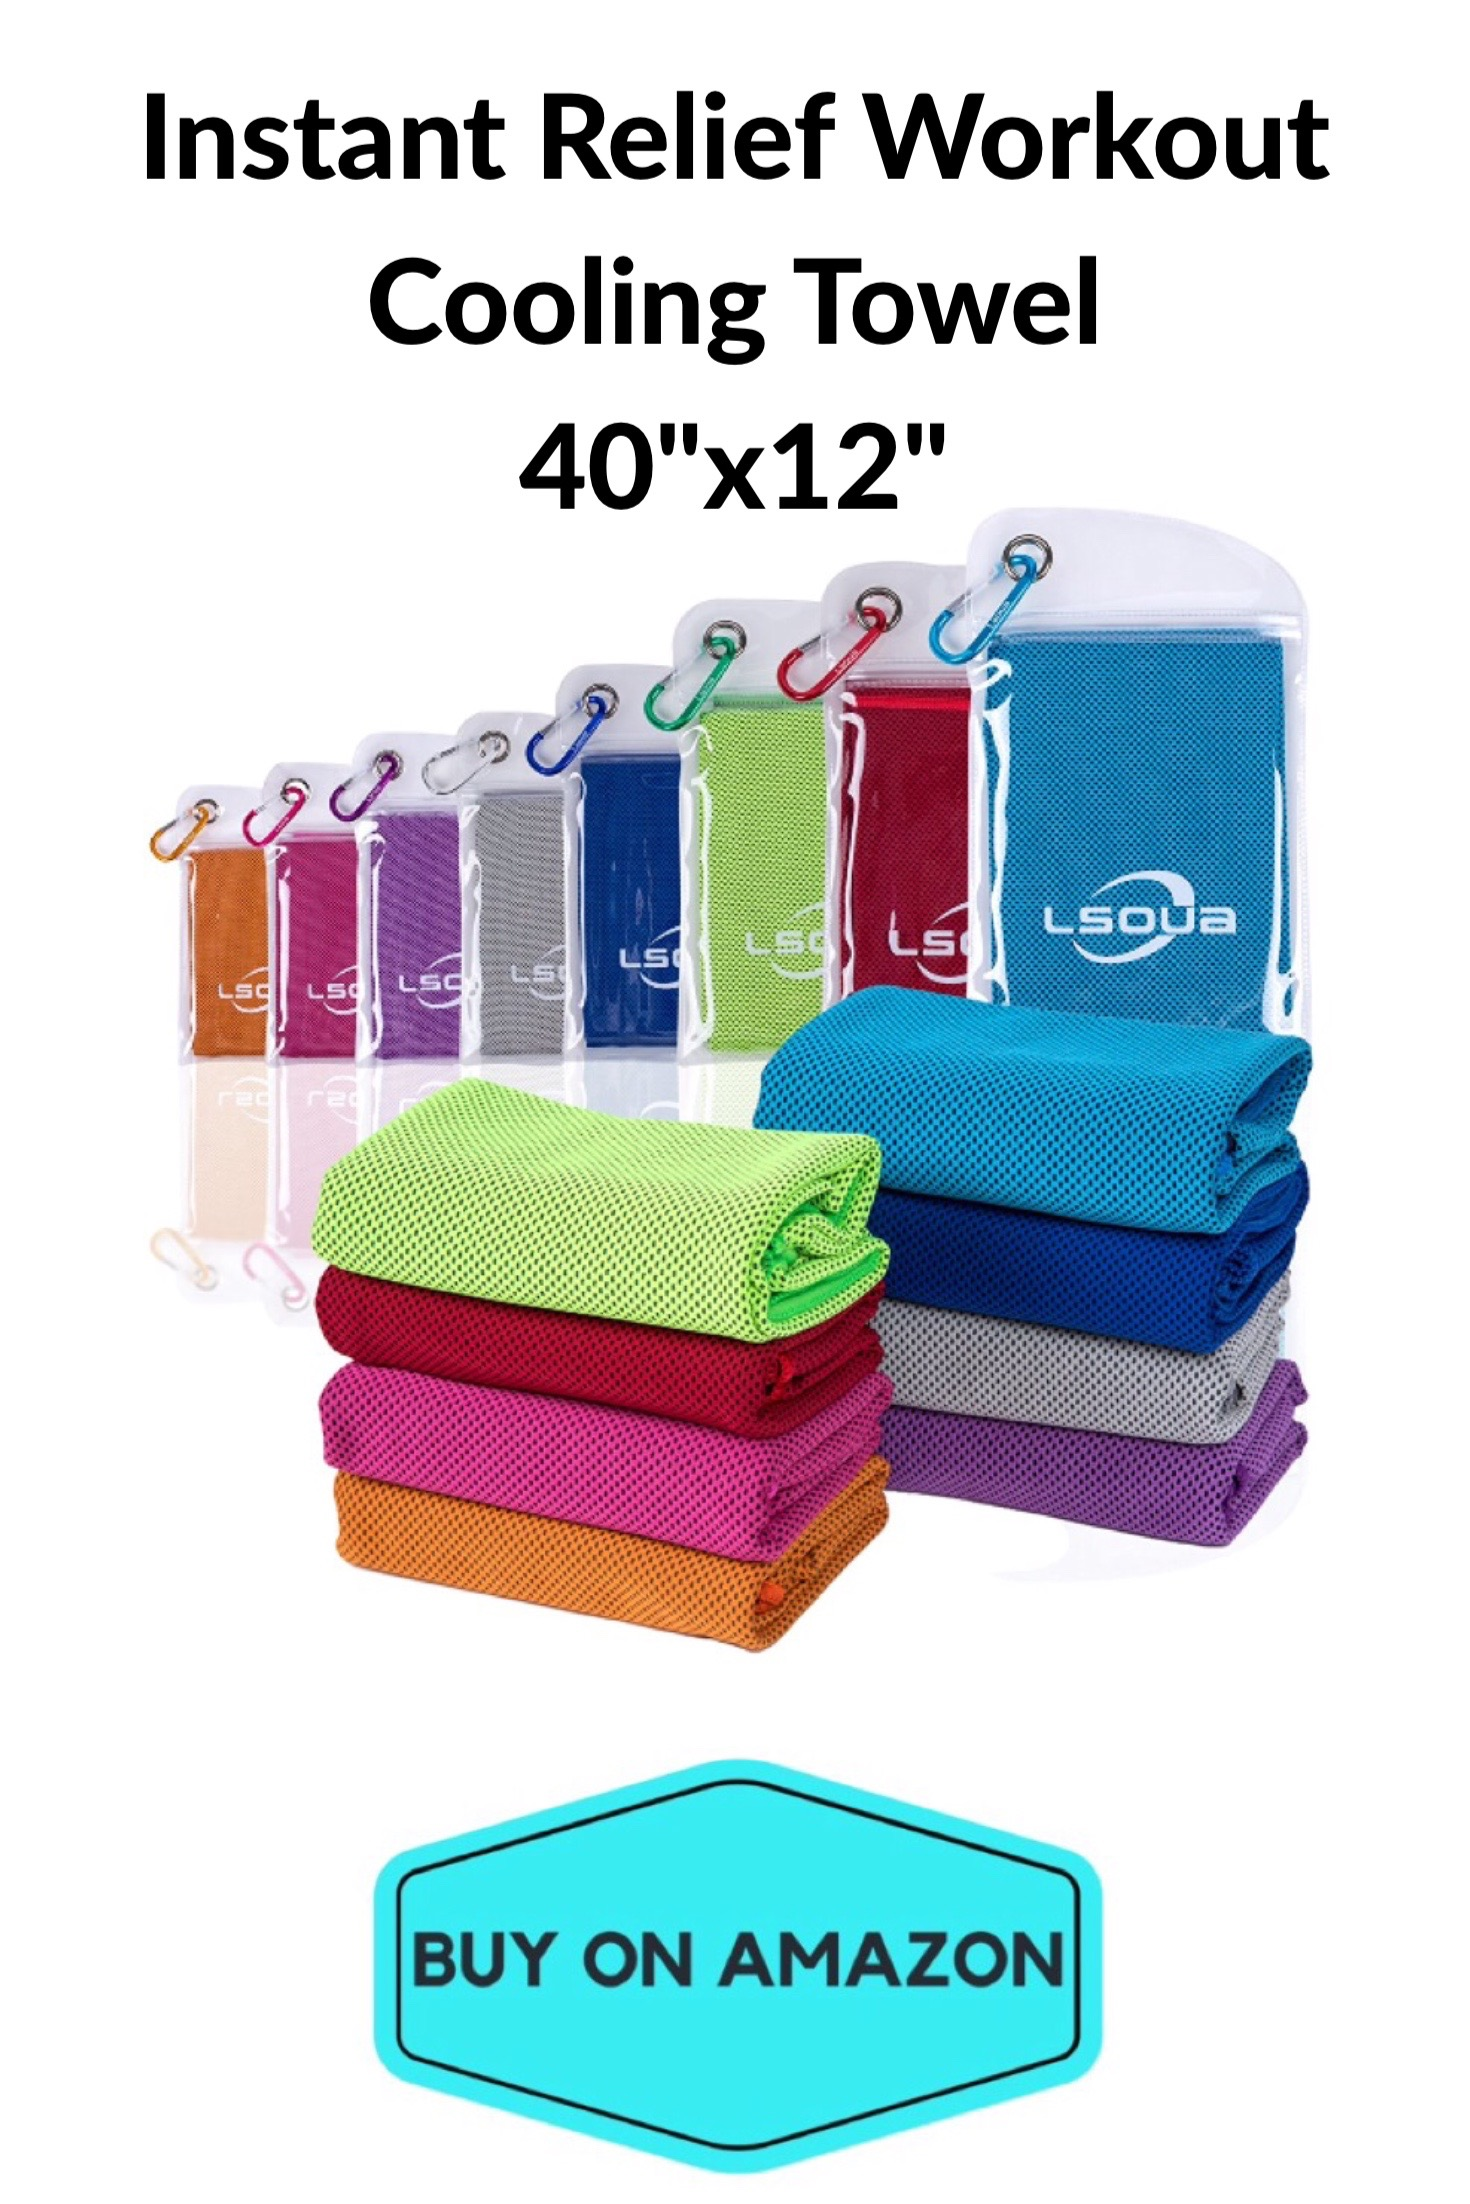 Instant Relief Workout Cooling Towel